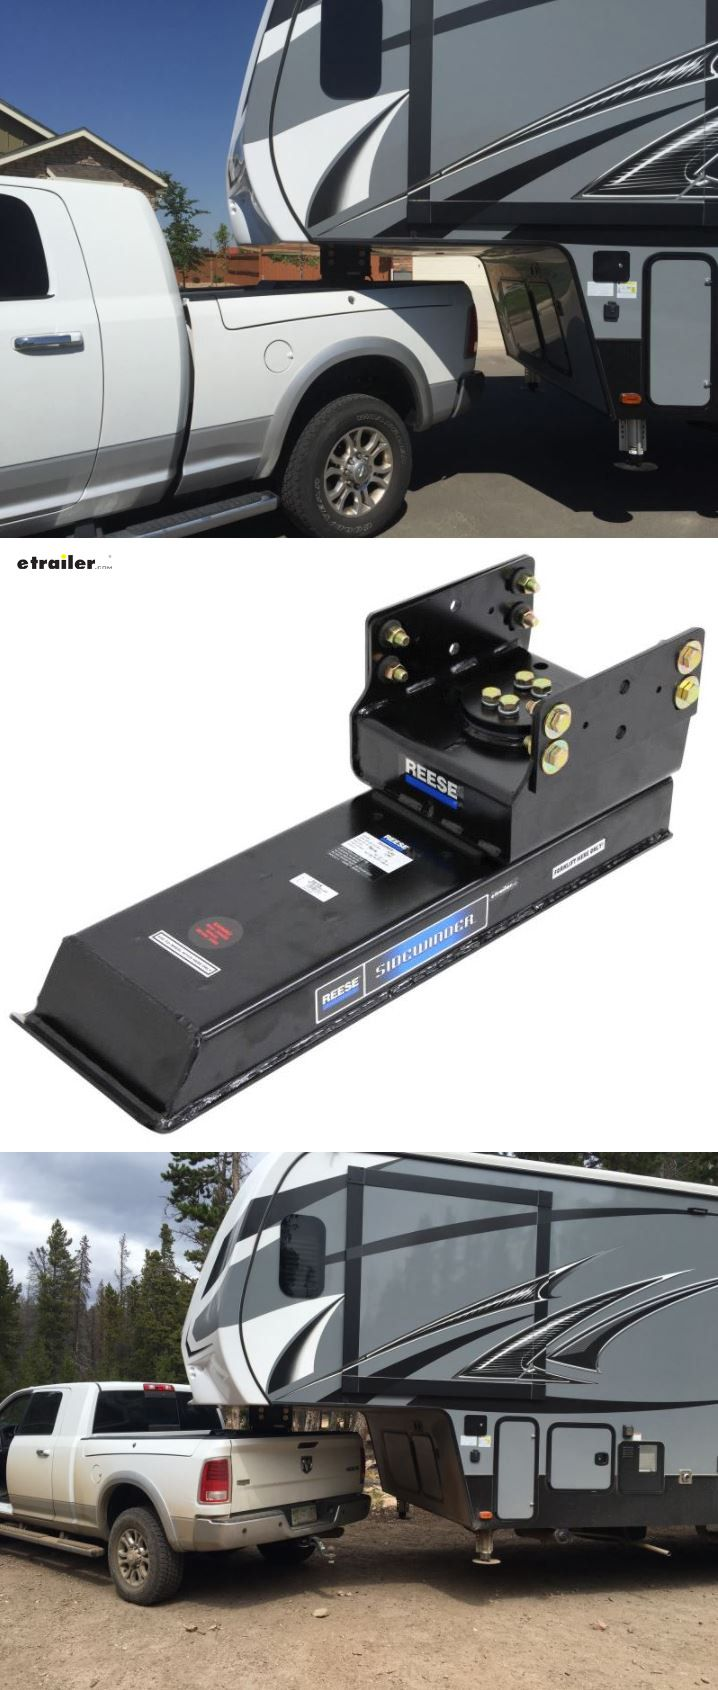 It Is Now Possible To Turn Your Short Bed Truck 90 Degrees Without Having To Worry That Your Trailer Will Col Fifth Wheel Hitch Fifth Wheel Campers Fifth Wheel